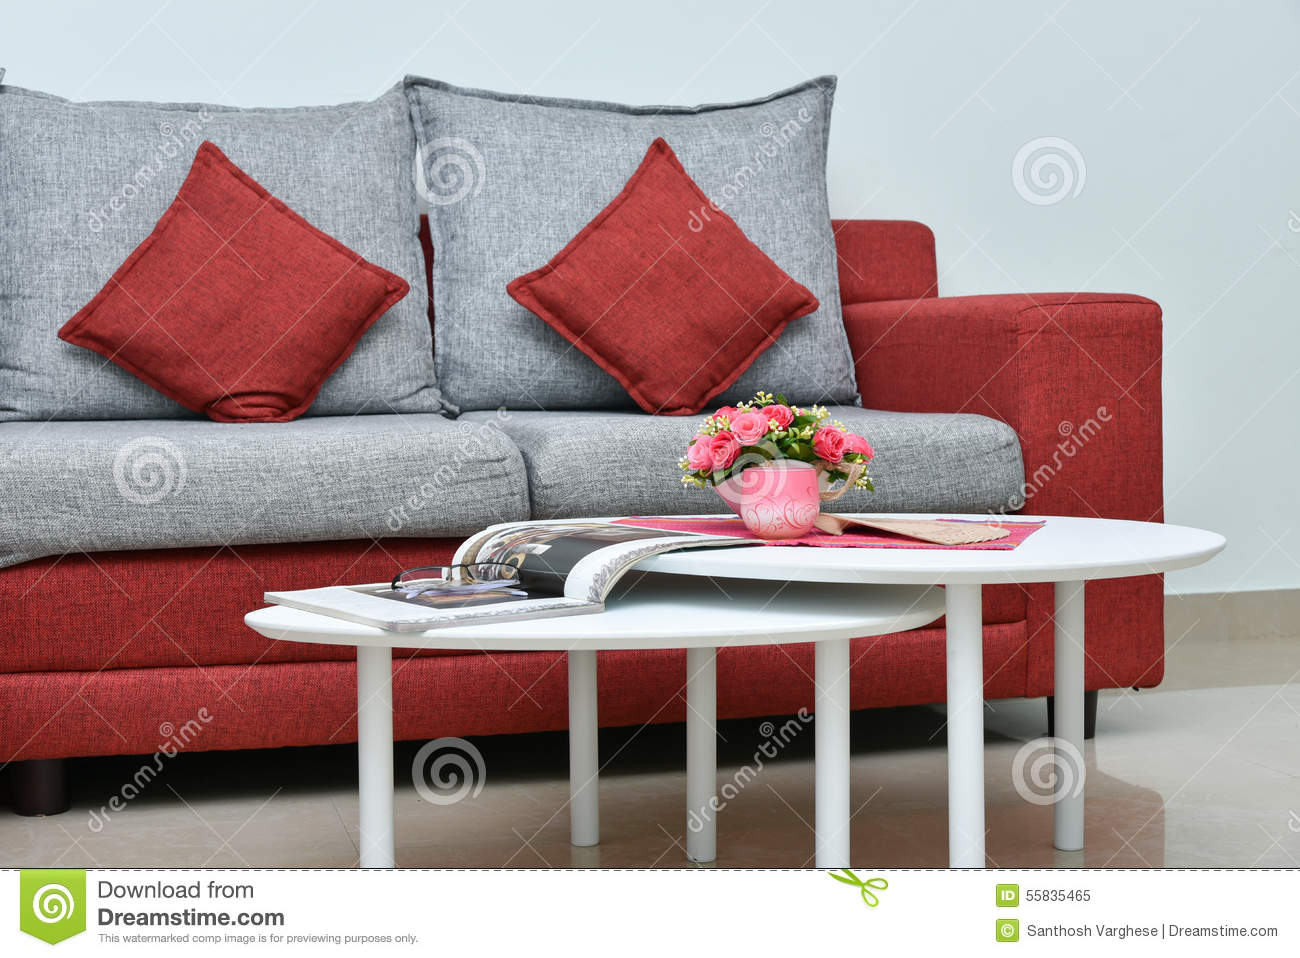 Image libre de droits: red and grey living room. image: 53310306